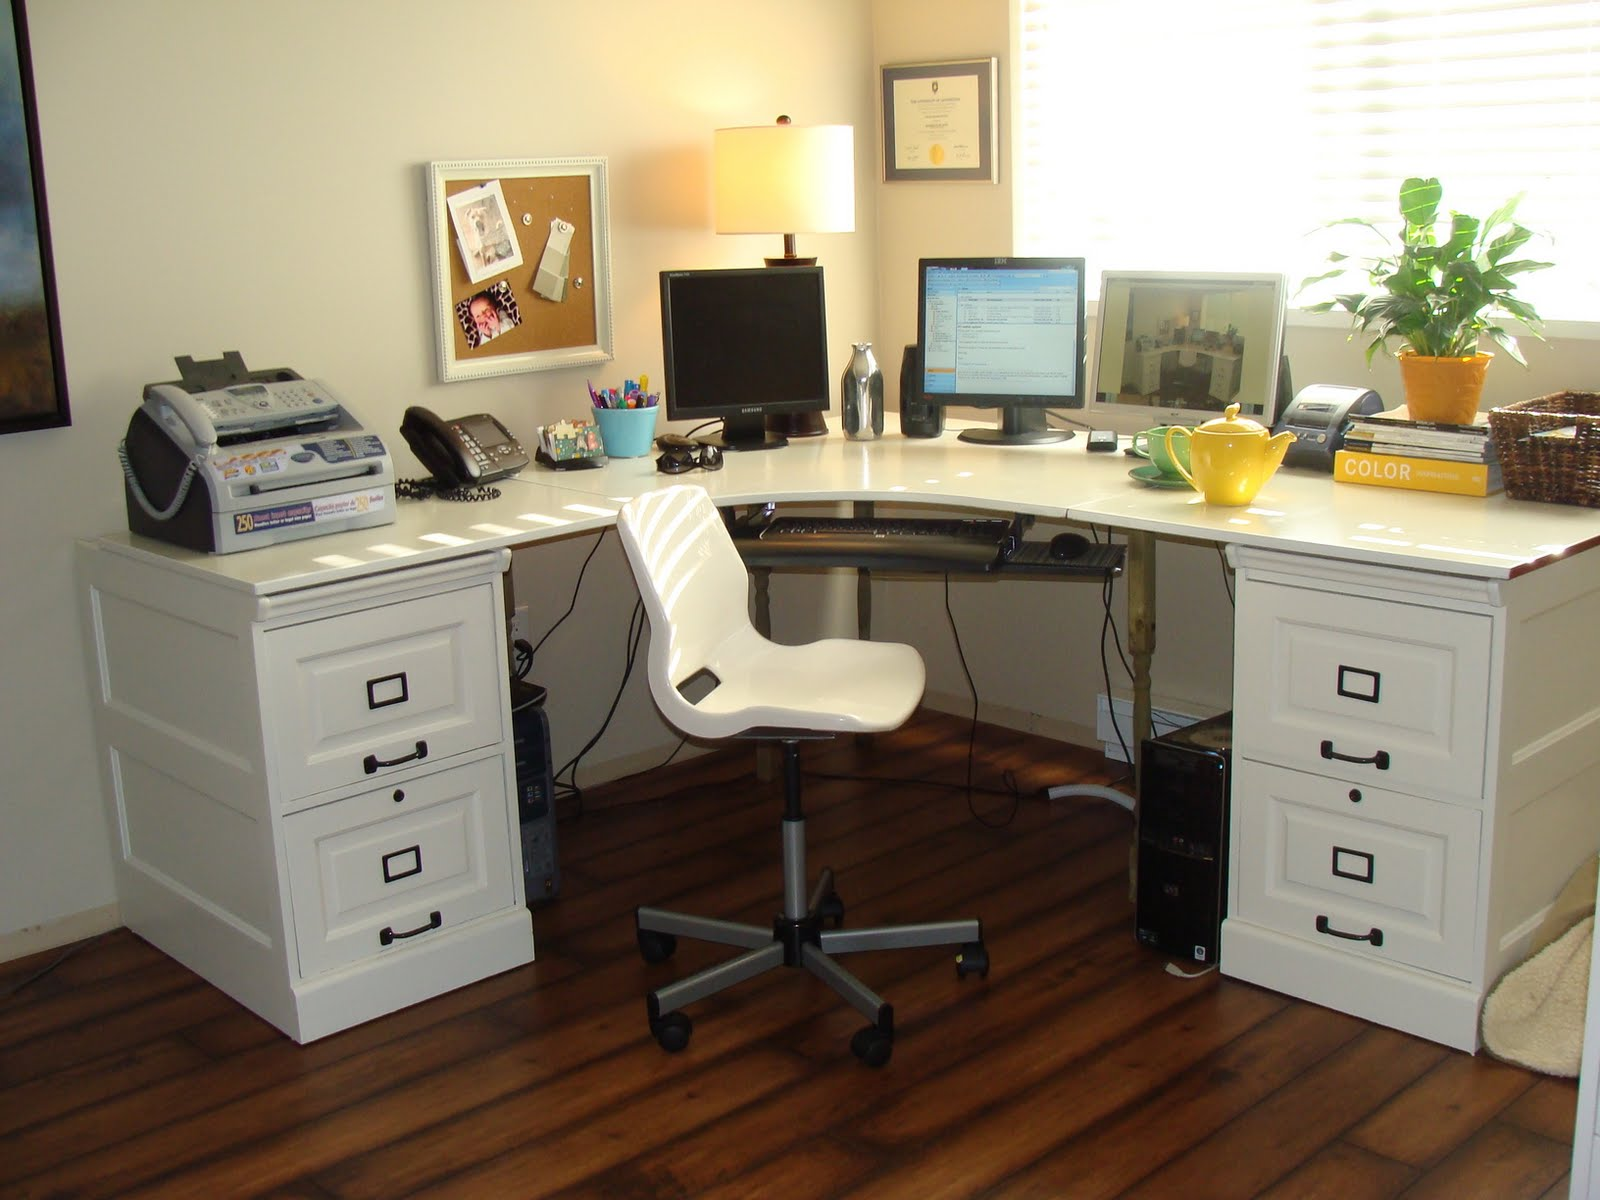 Materials: Effective Desk and wood file cabinets